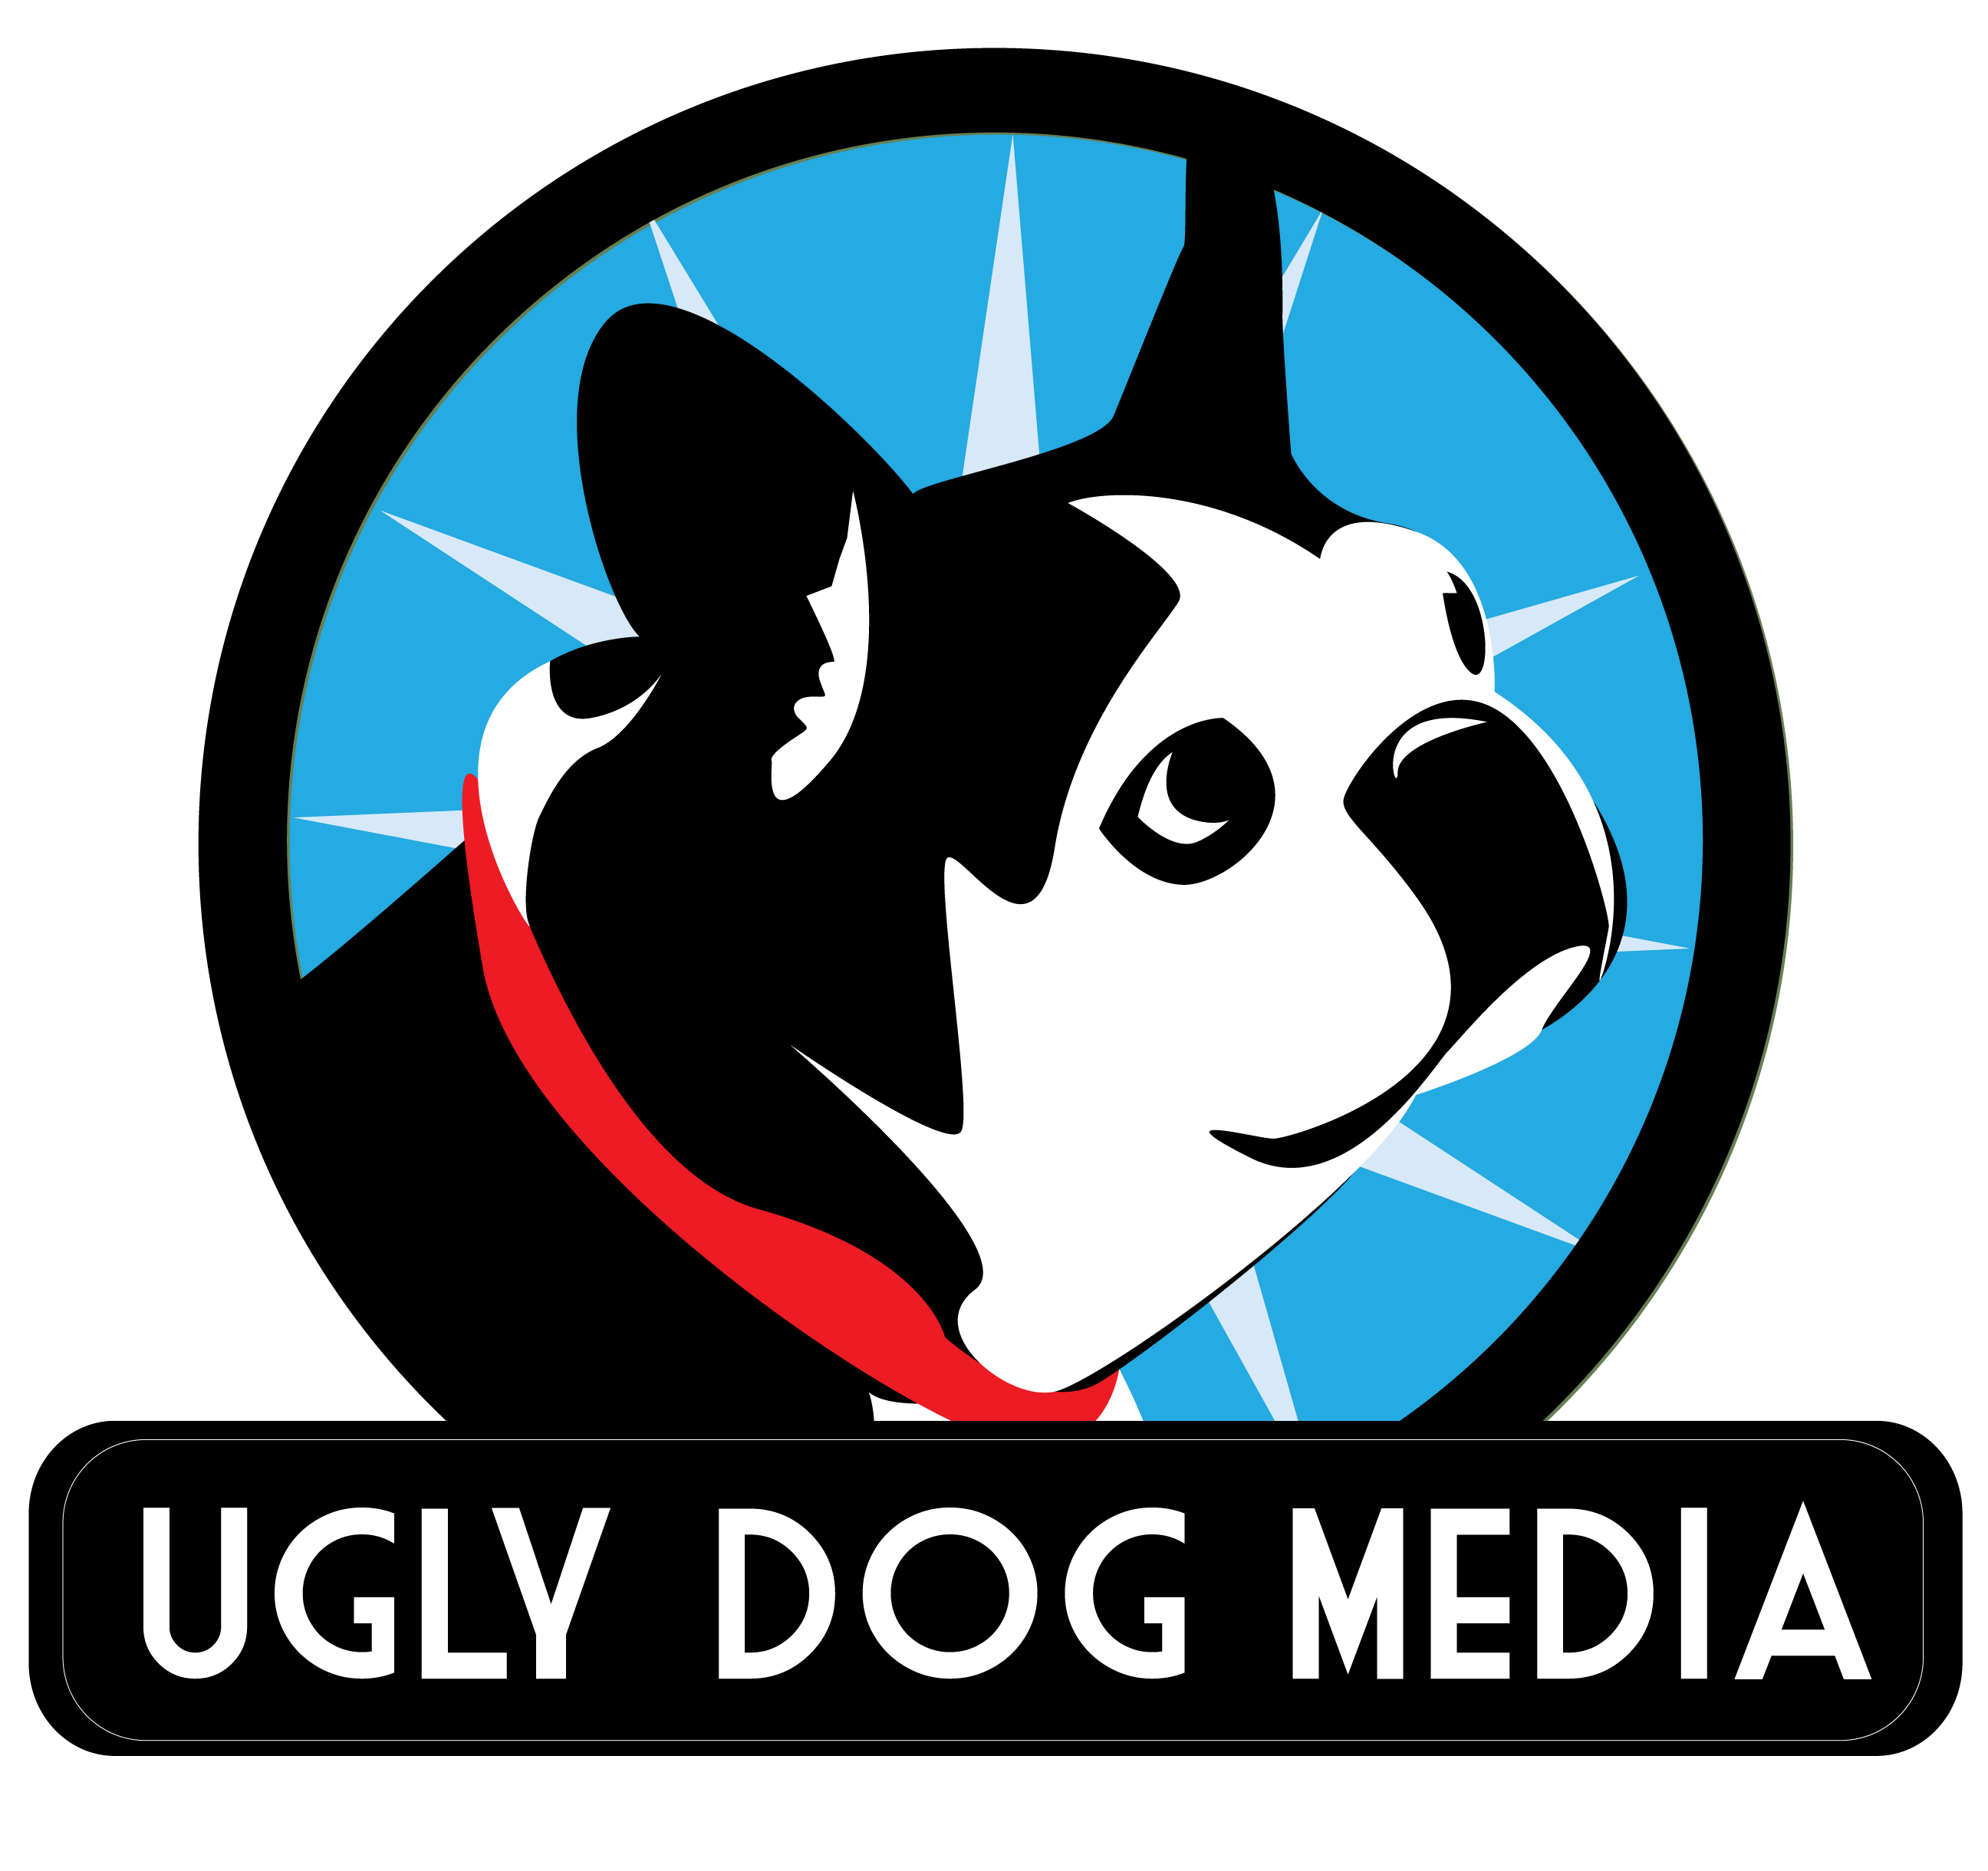 Ugly dog face clipart clip free stock Ugly Dog Media, Inc. | The Ugly Dog clip free stock